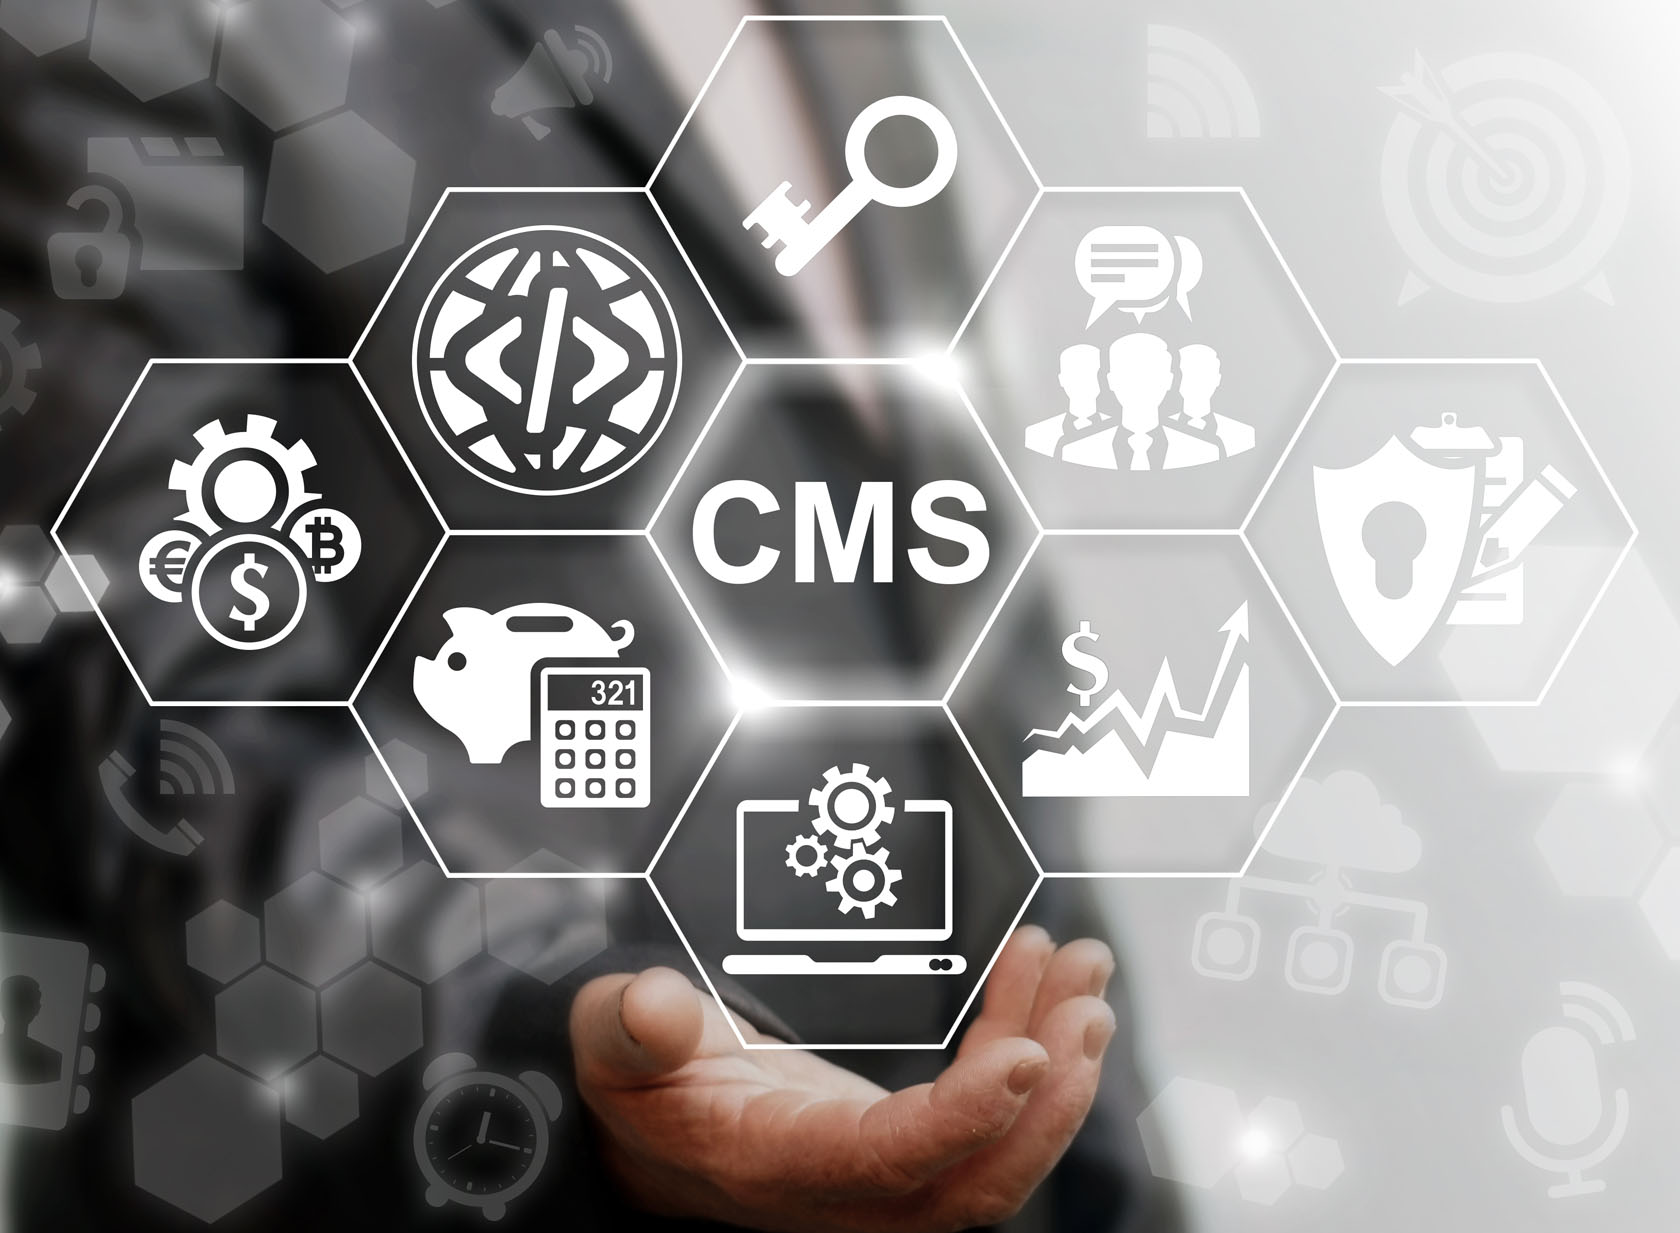 What is a CMS and why is it so important?